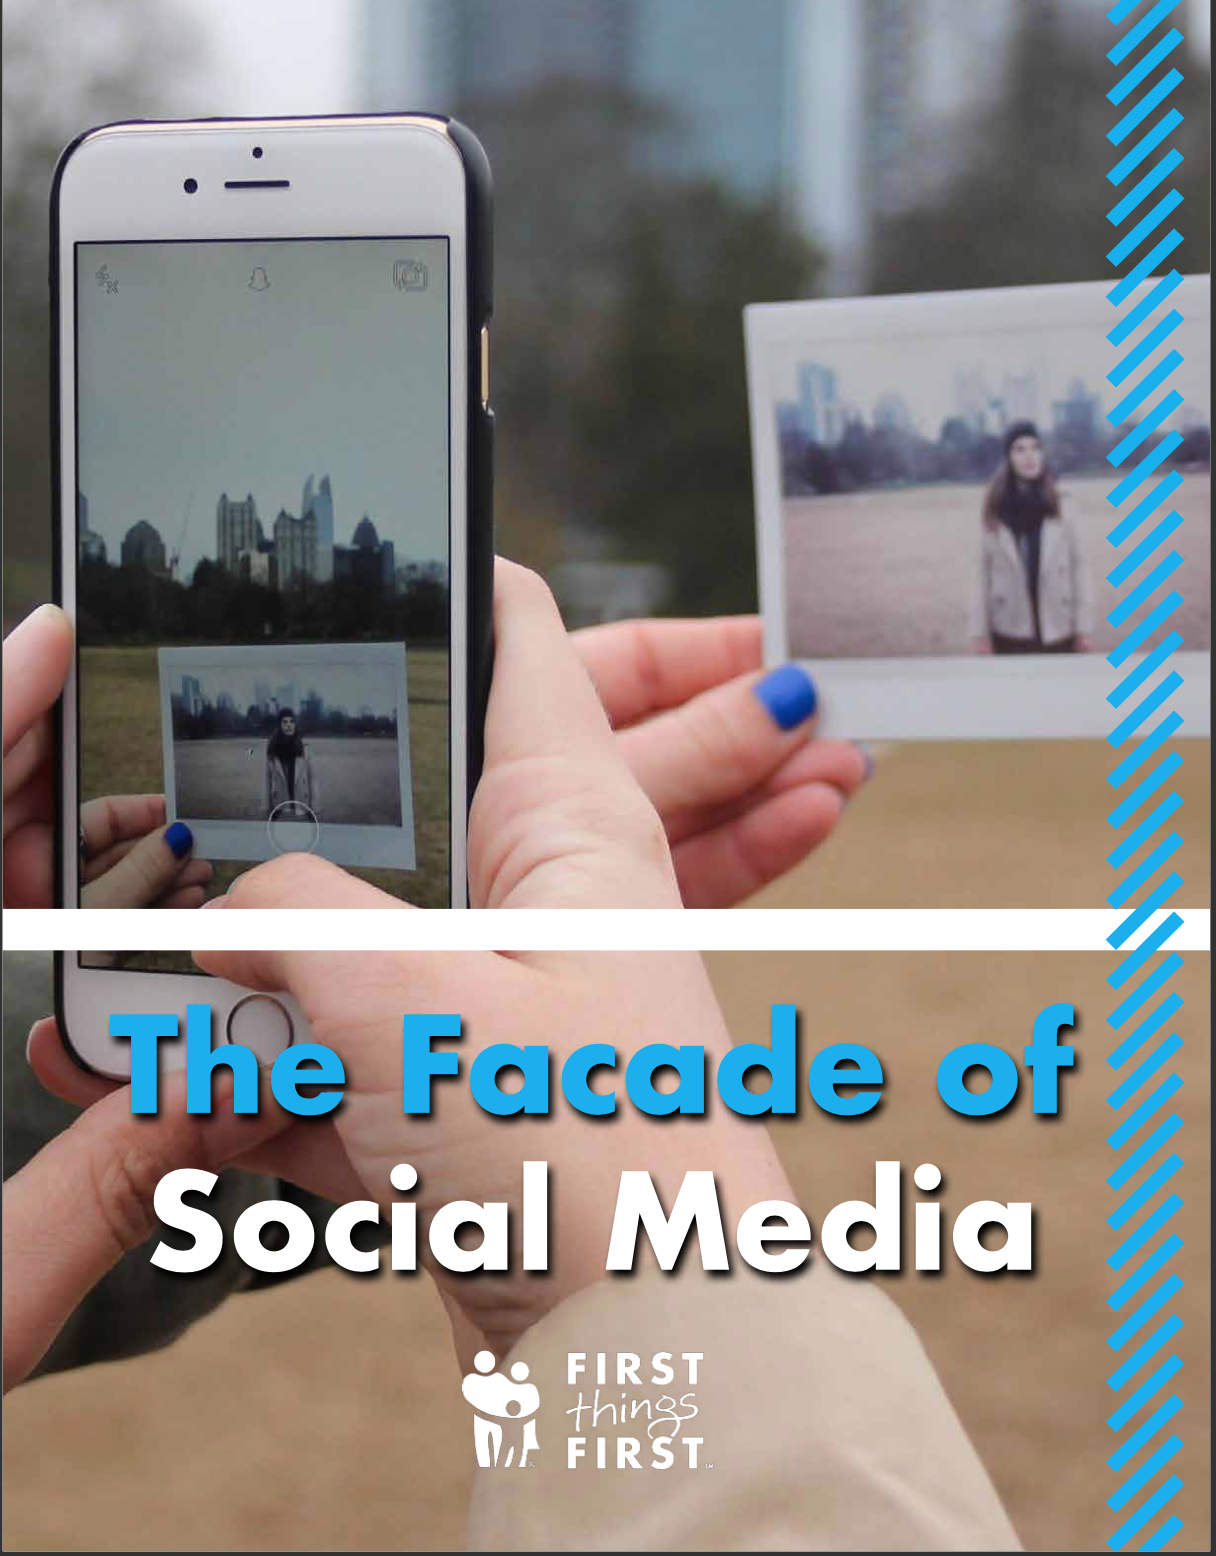 The Facade of Social Media - Download this interactive PDF for practical social media management tips and resources about technology and the brain.